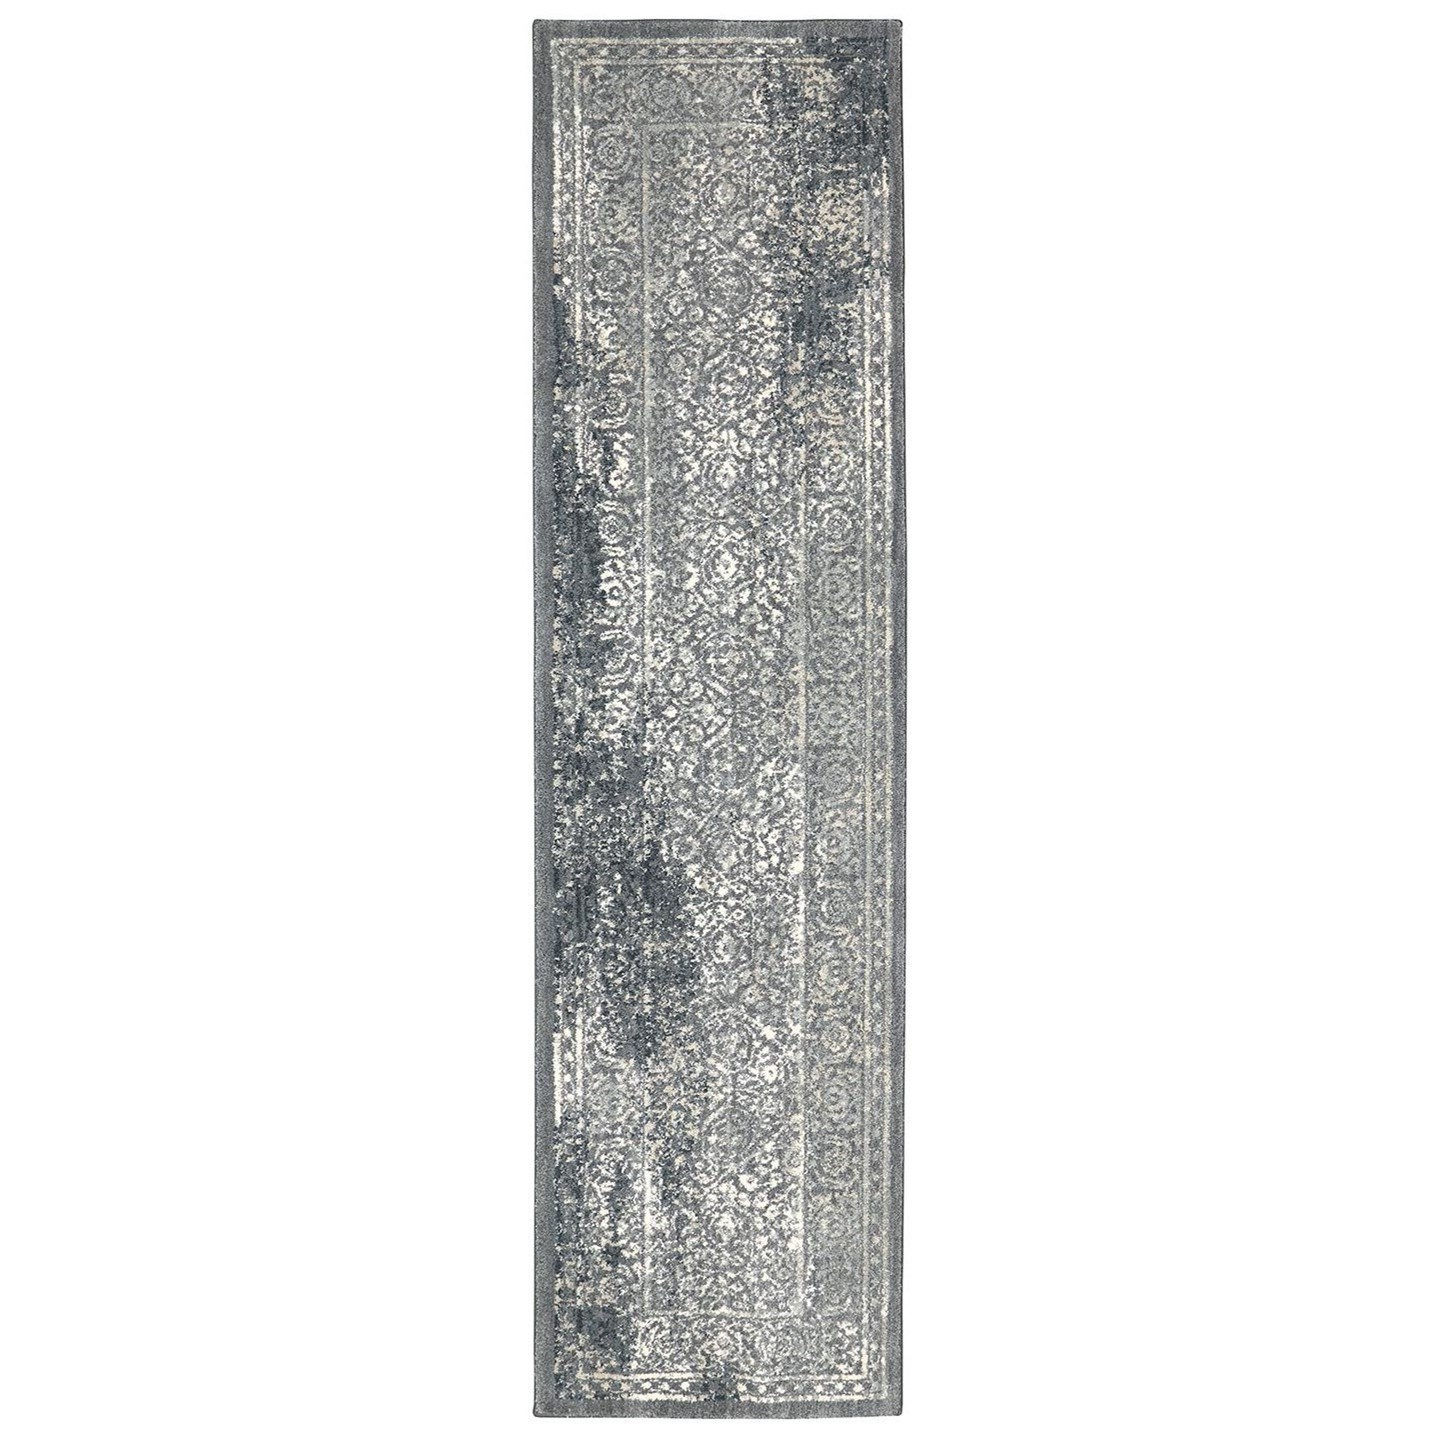 Karastan Rugs Euphoria 2'1x7'10 Ayr Willow Grey Rug Runner - Item Number: 90643 90075 025094